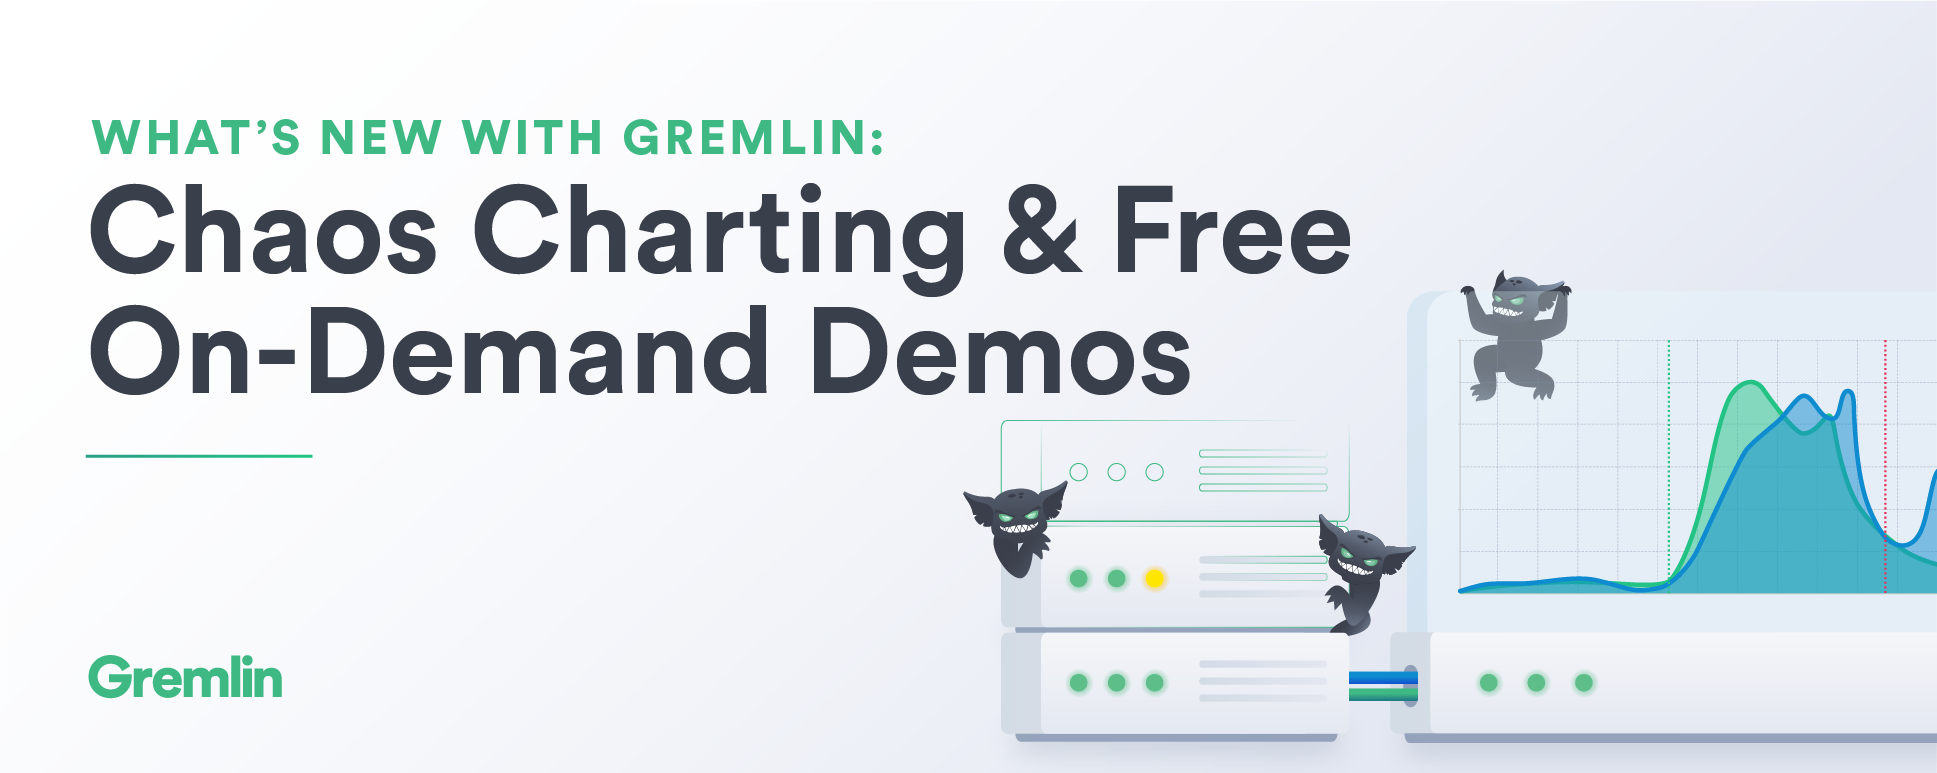 What's new with Gremlin: Chaos Charting and Free On-Demand Demos